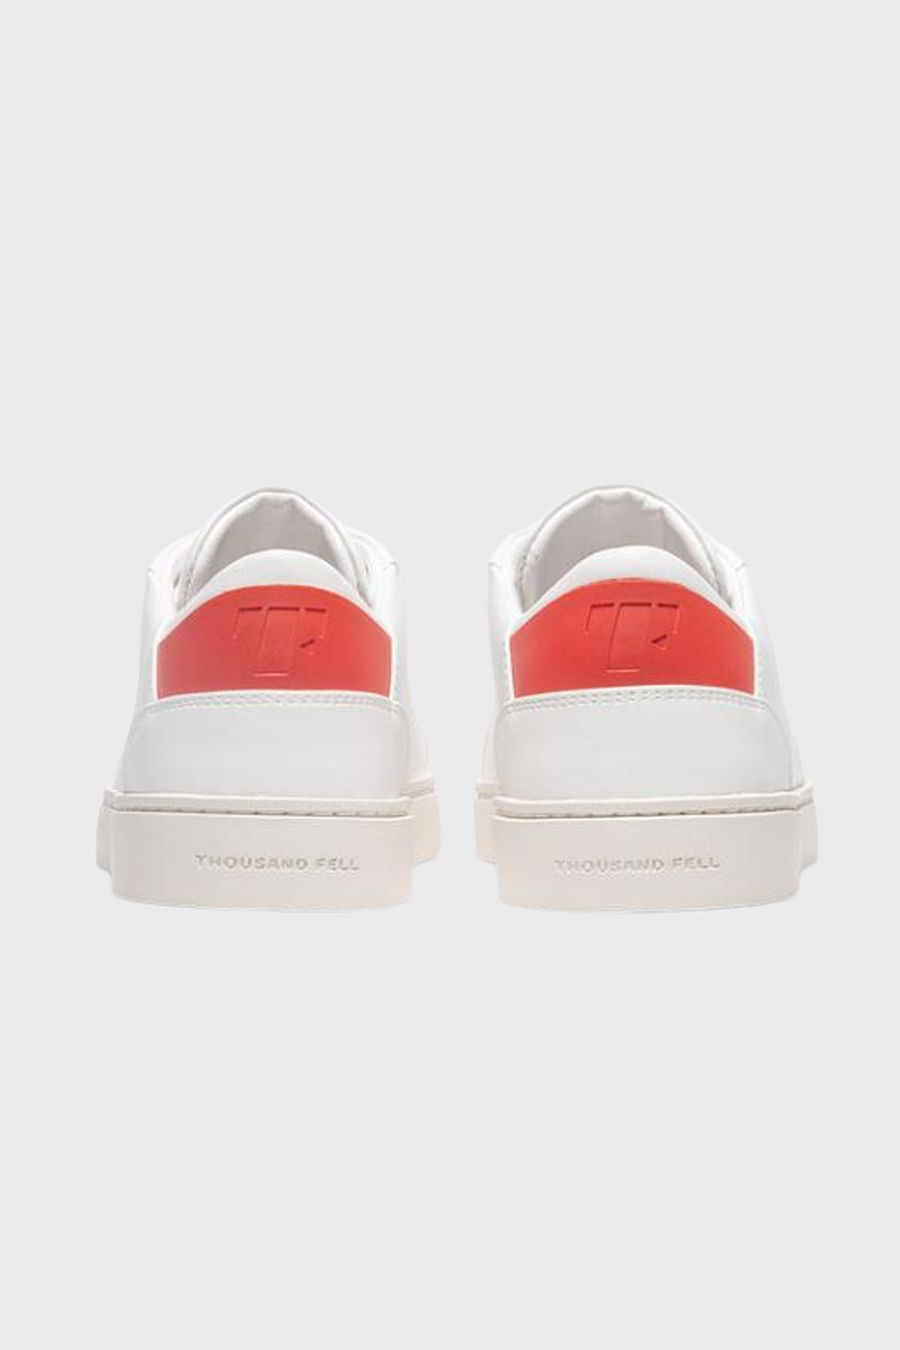 Thousand Fell Women's Lace Up | Flame (Red)